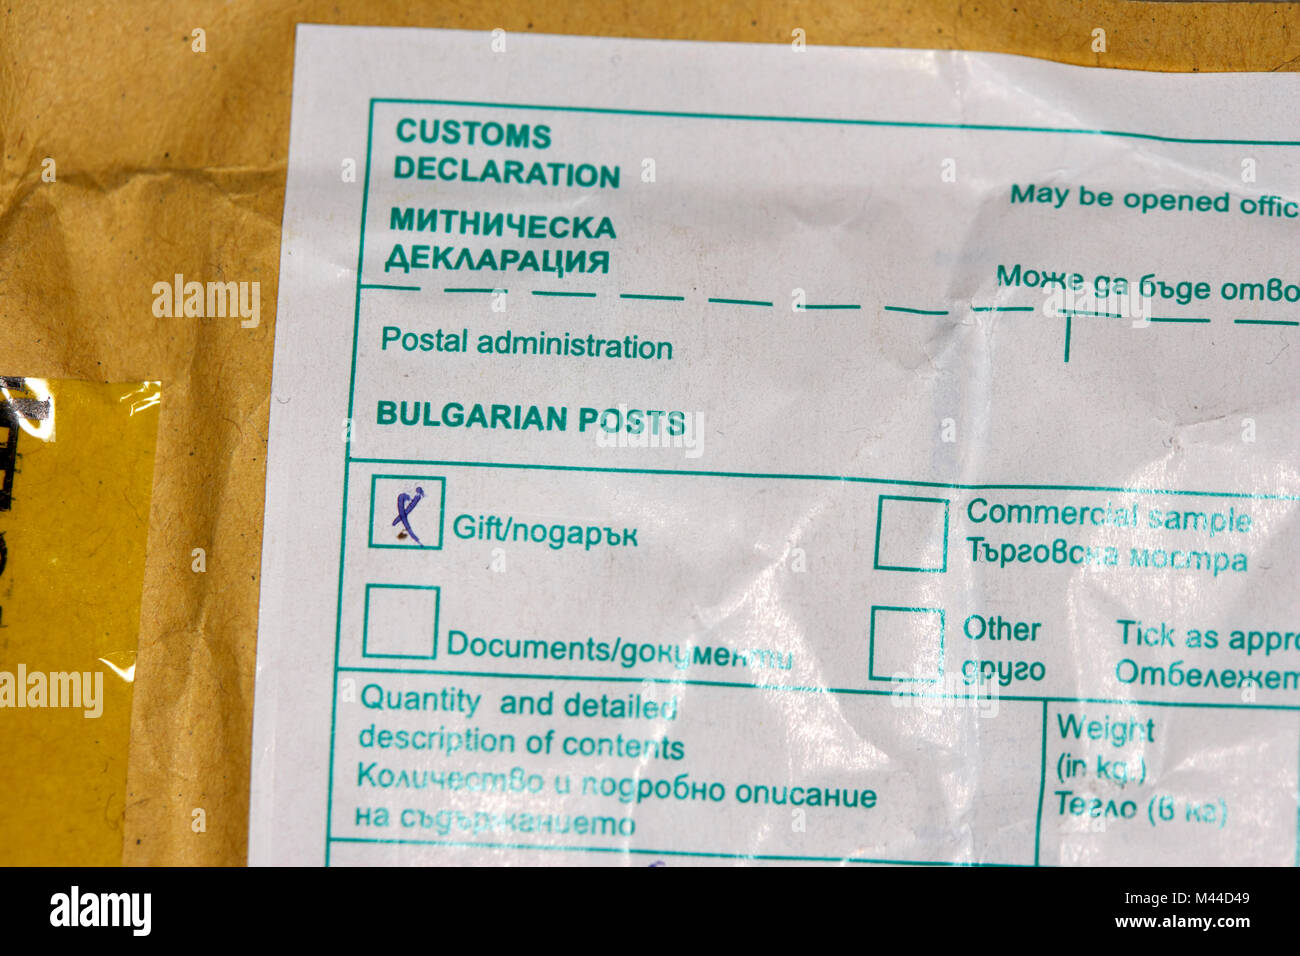 customs declaration on parcel sent from bulgaria marked as a gift - Stock Image